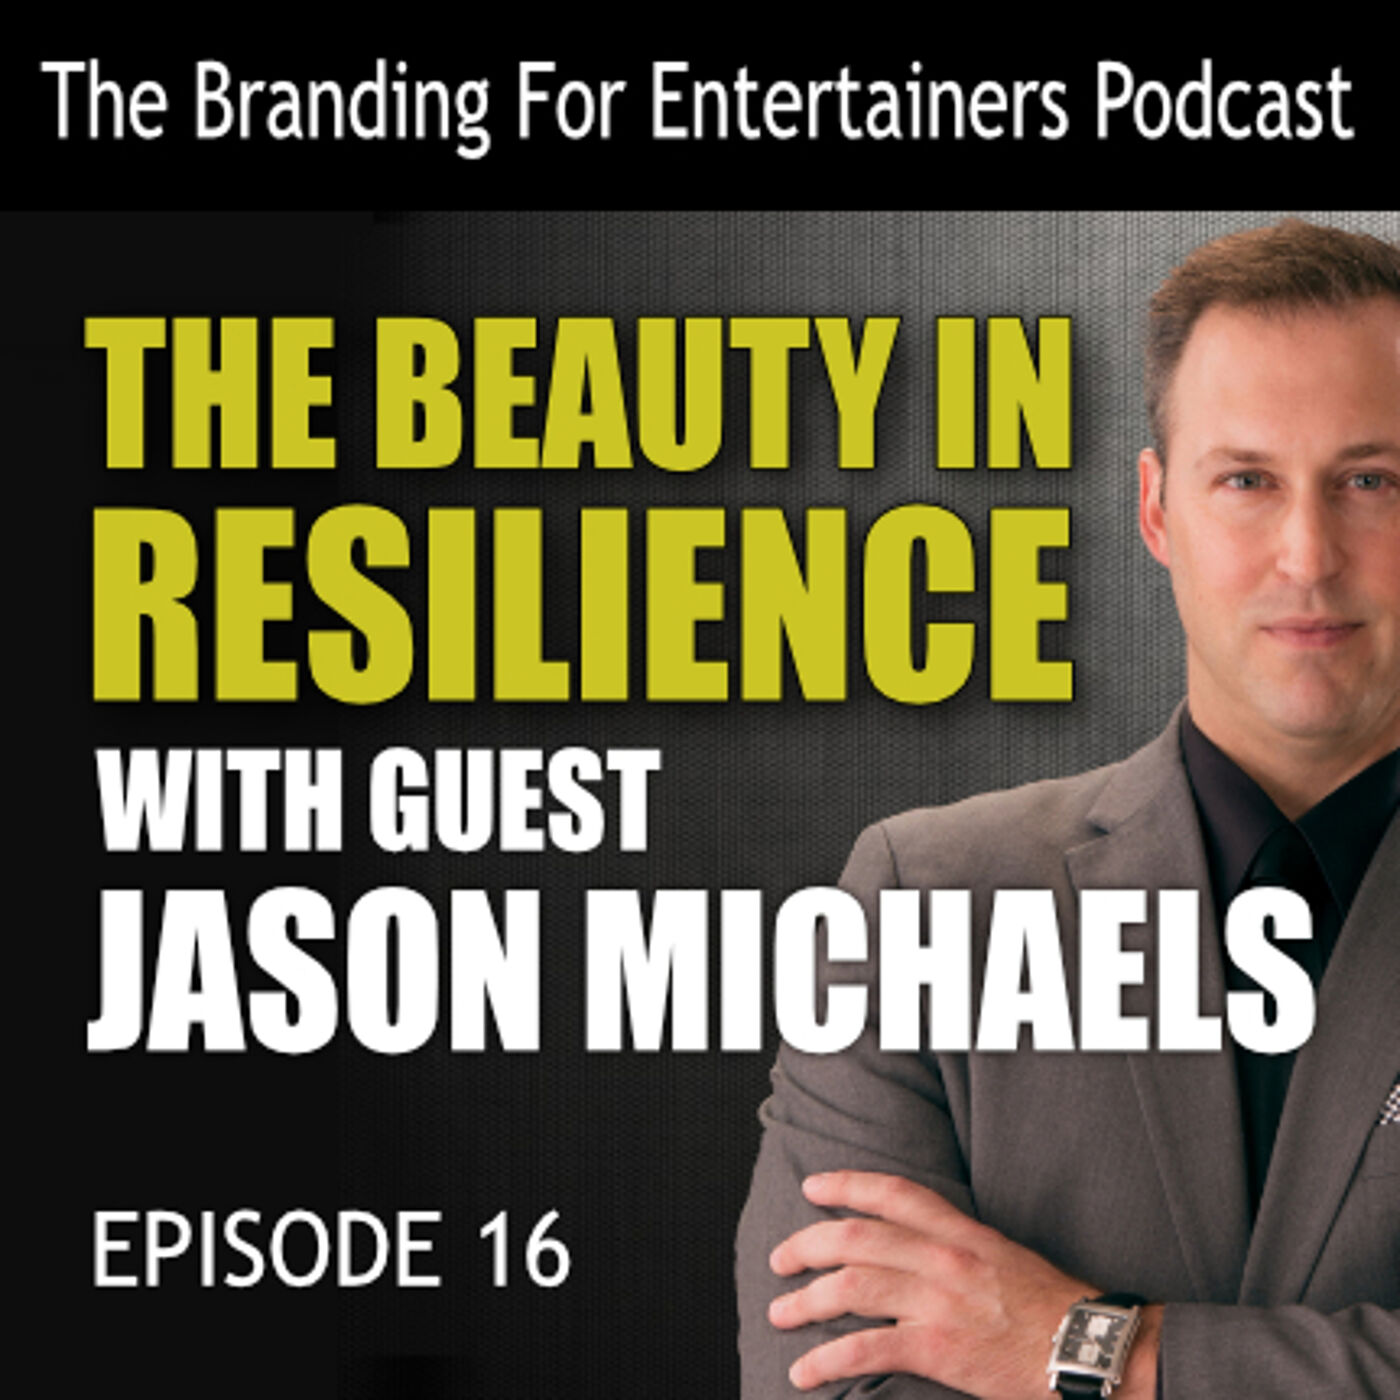 BFE EP16: The Beauty In Resilience with Jason Michaels